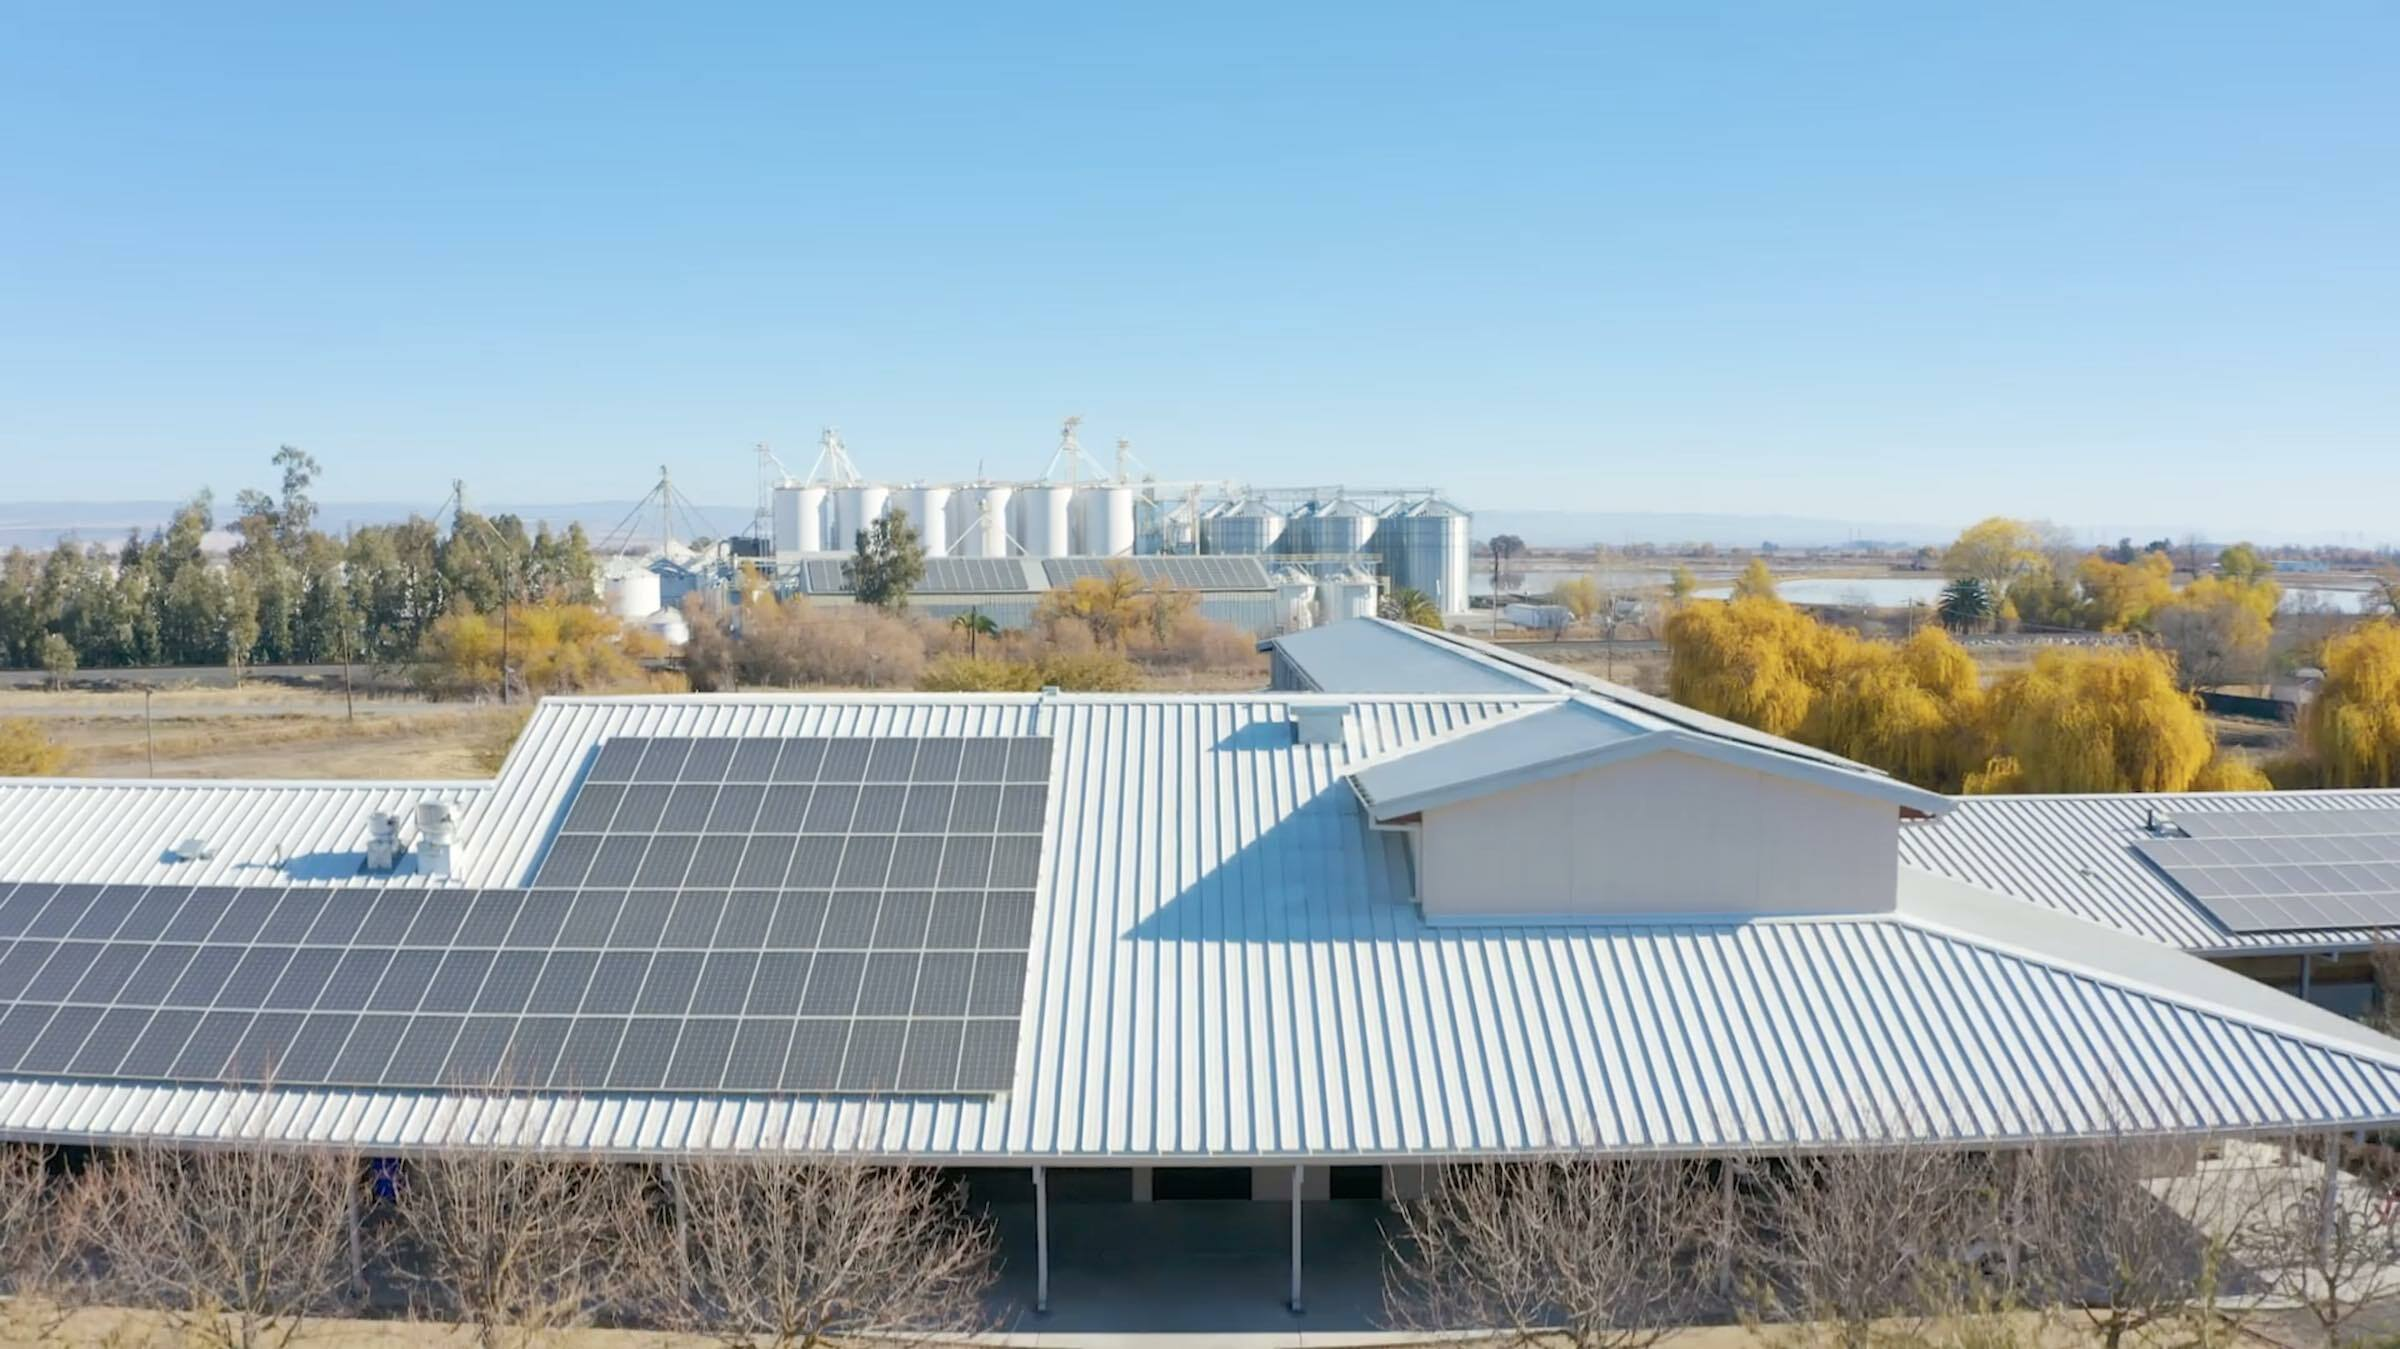 Solar panels atop Lundberg's Administration Building and Drying & Storage Facilities.